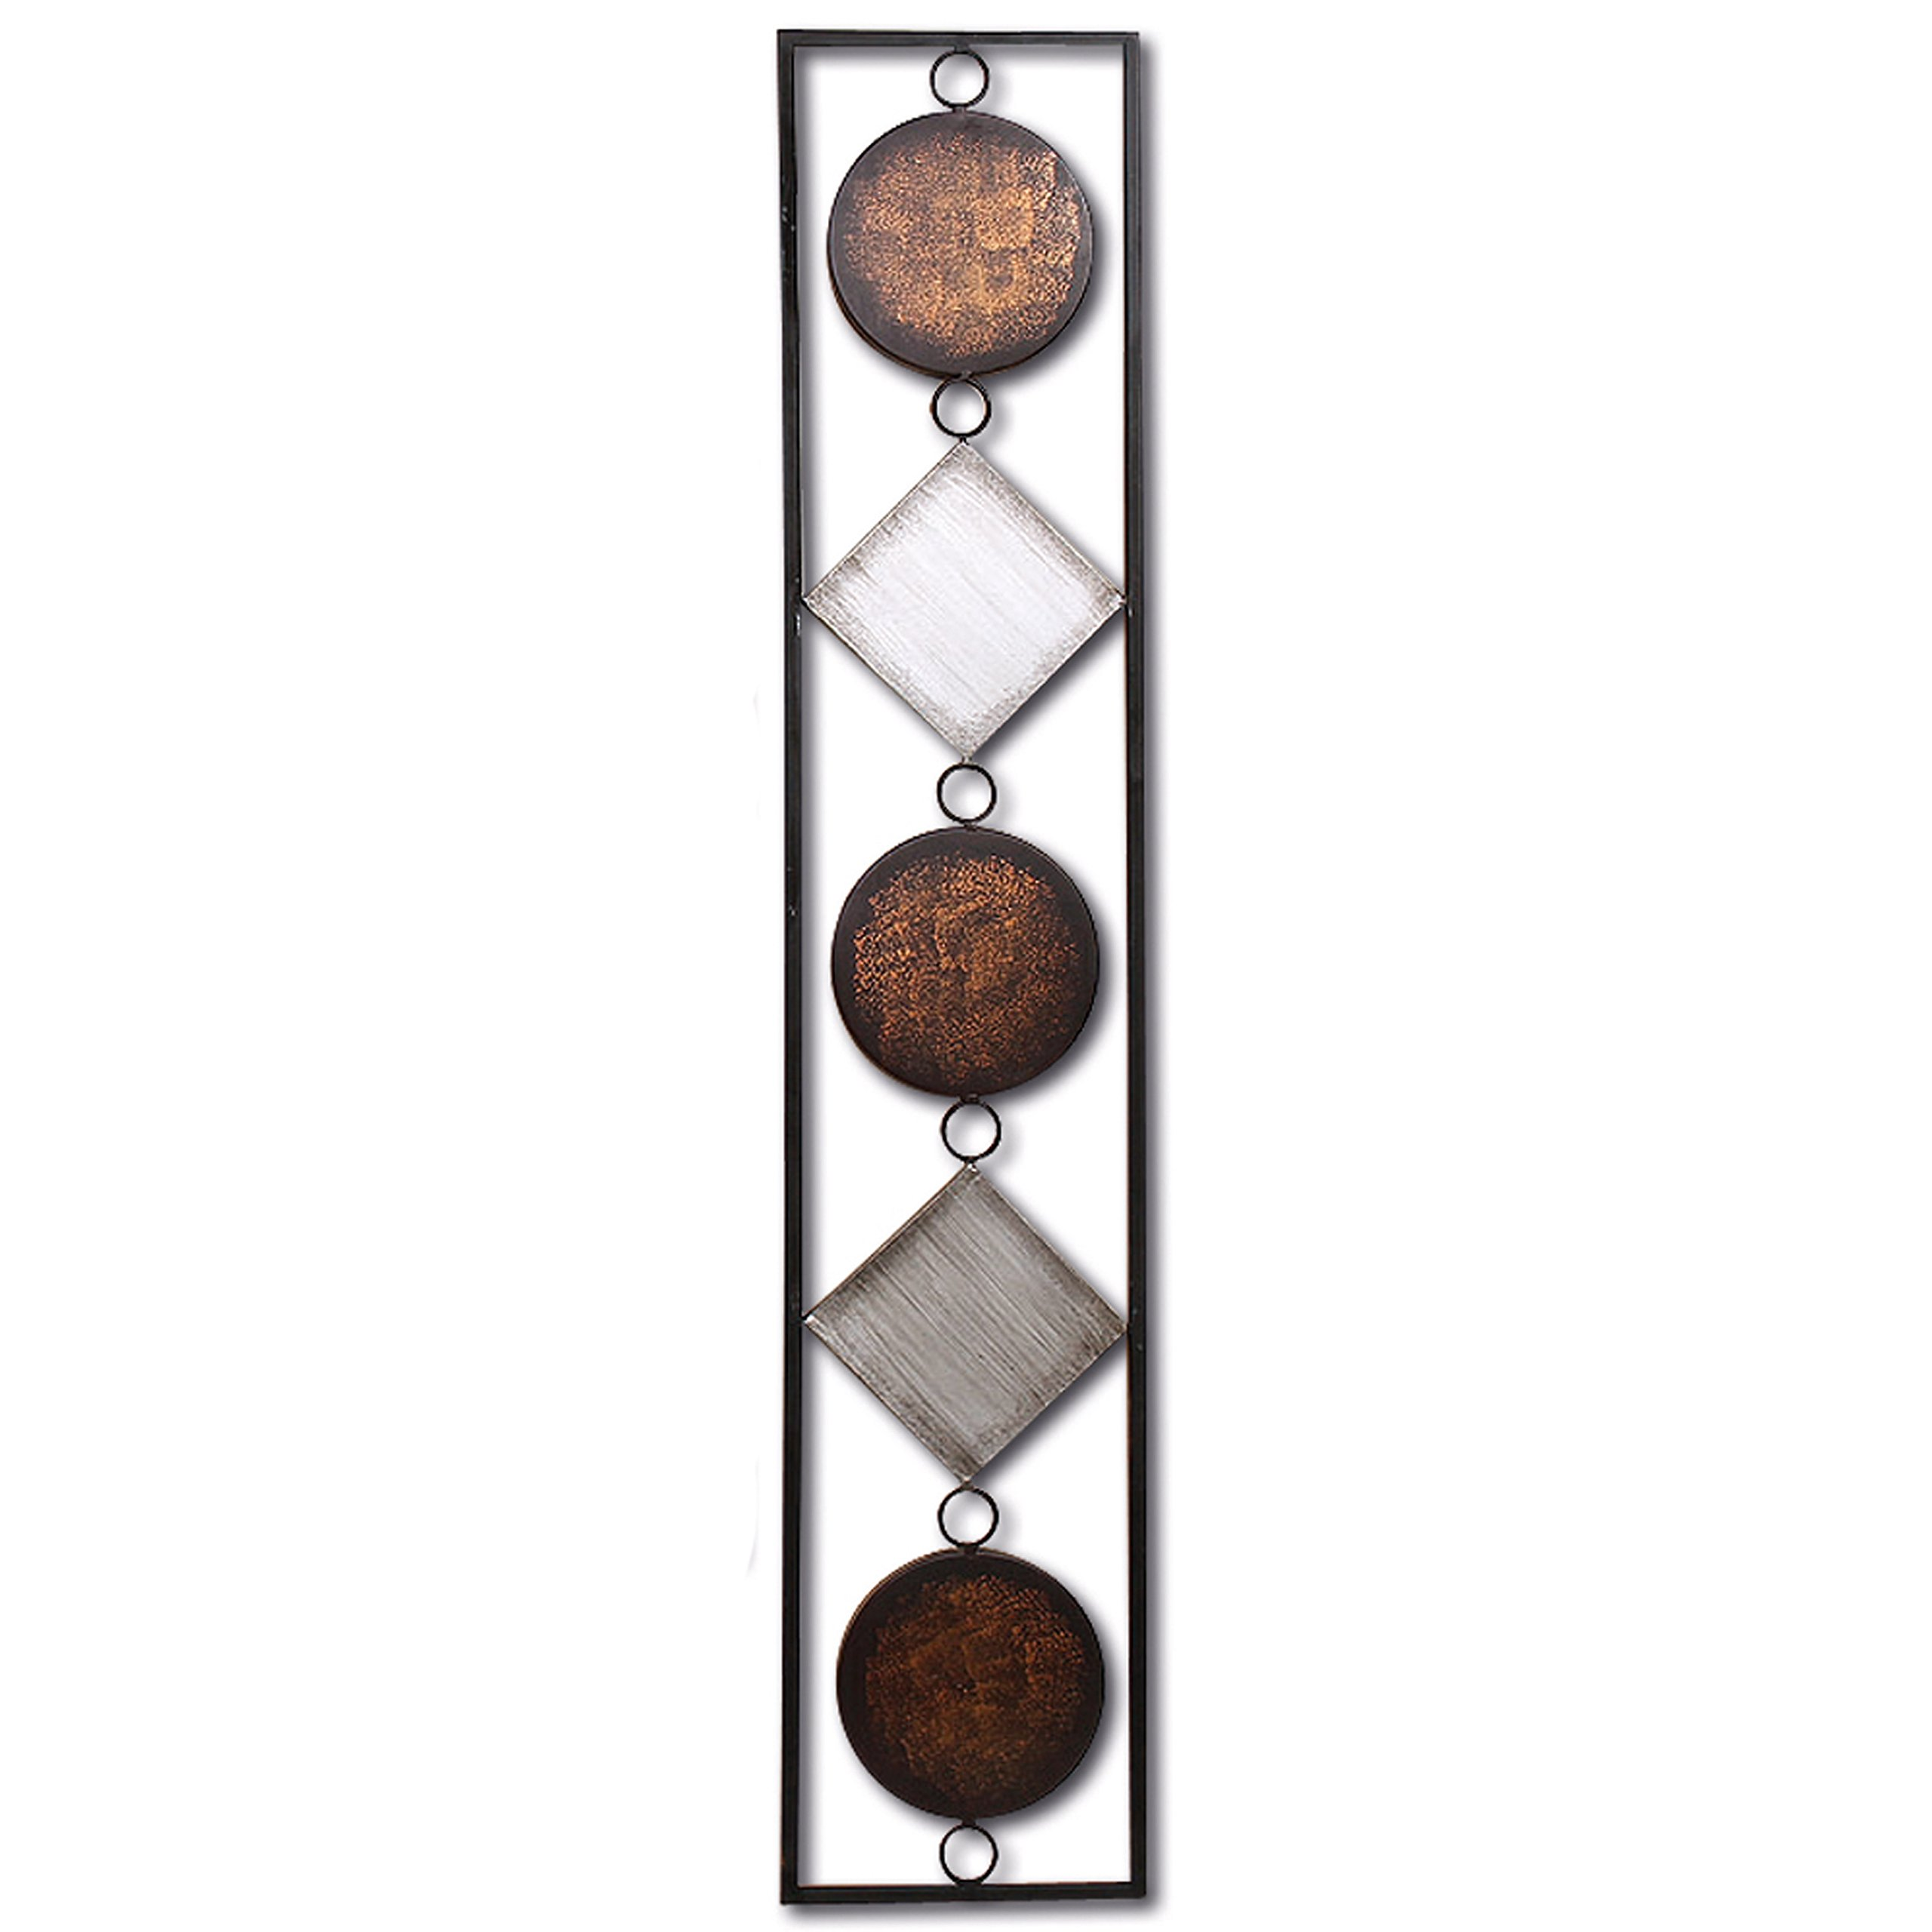 WHW Whole House Worlds Modernist Floating Circles and Squares, Rectangle Frame Metal Wall Art, Artisan Crafted, Rustic Gray, Bronze,Gold and Silver Painted Iron, Over 3 Ft Long, Plaque by WHW Whole House Worlds